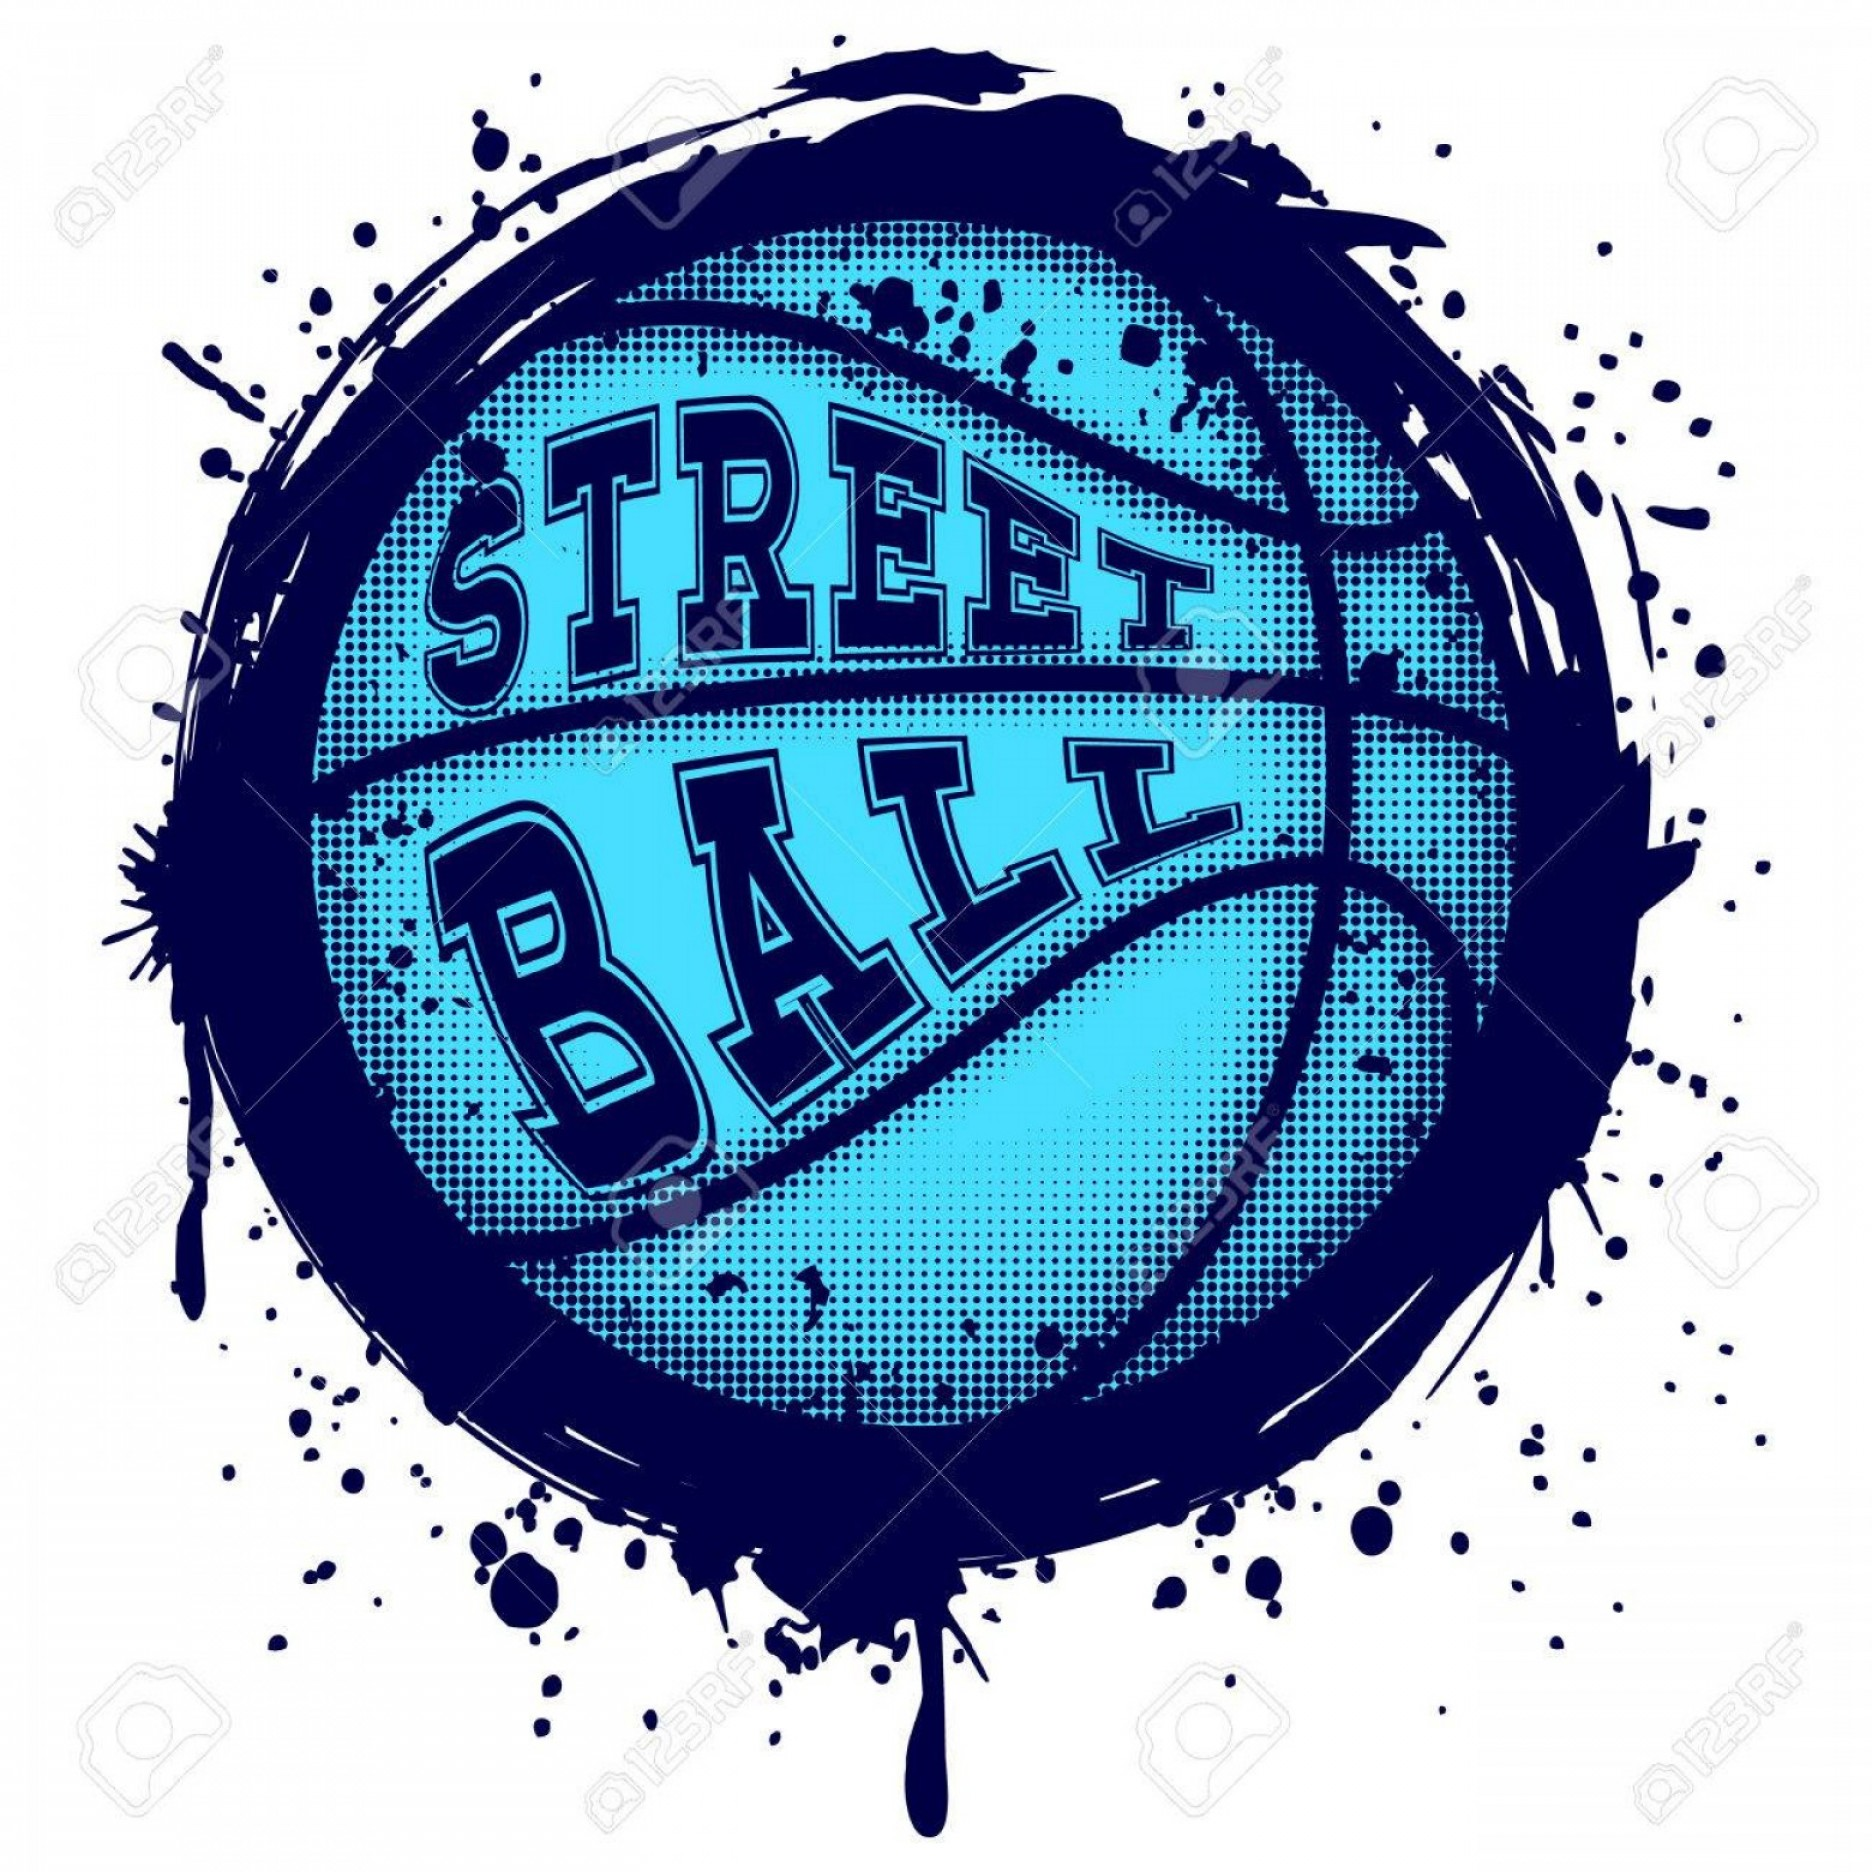 Grunge Basketball Vector: Photostock Vector Abstract Vector Illustration Blue Basketball Ball On Grunge Background